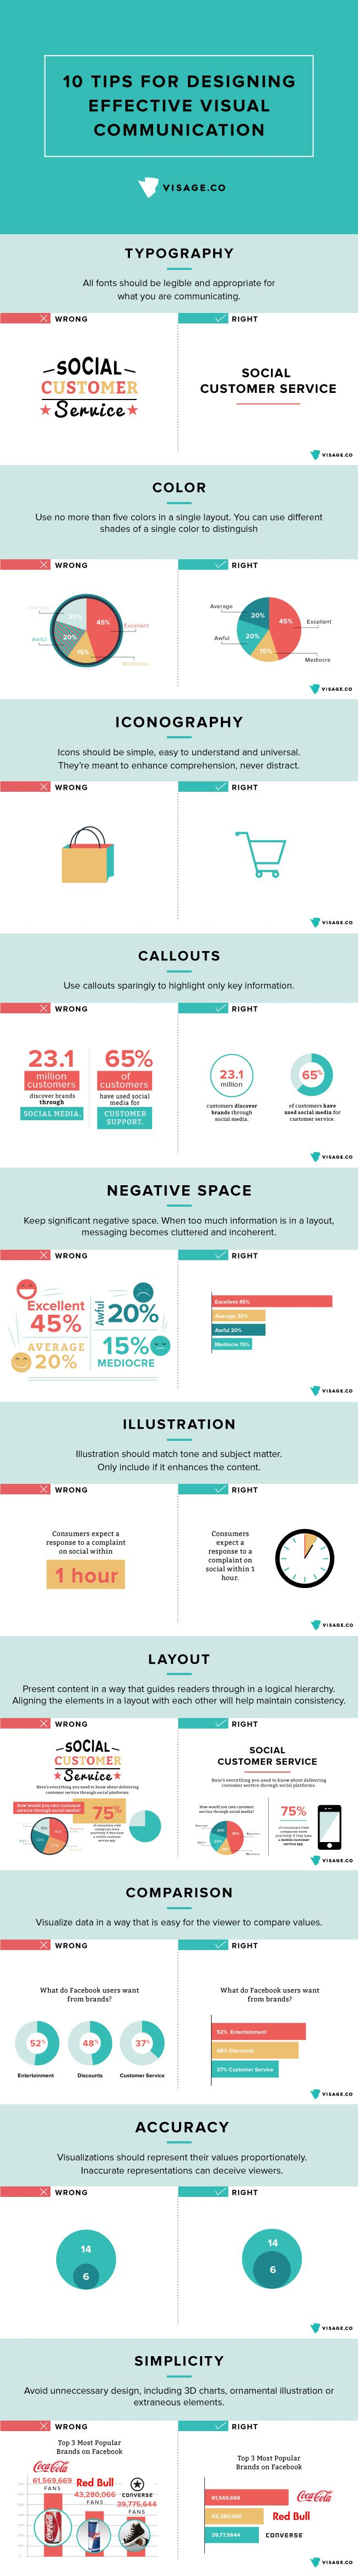 10 Tips For Designing Effective Visual Communication.